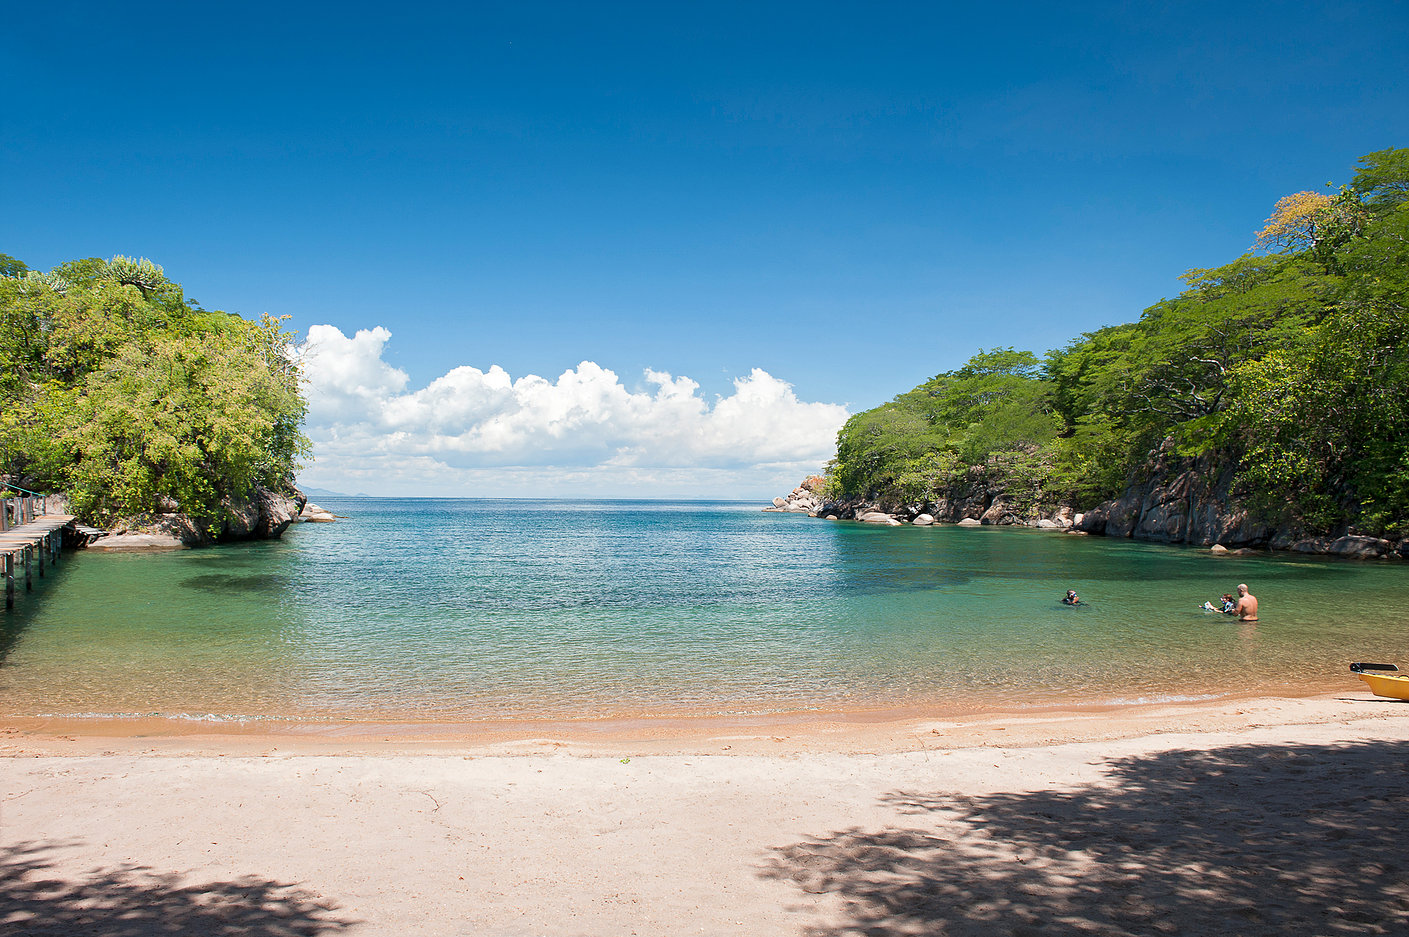 mumbo island lodge lake malawi5